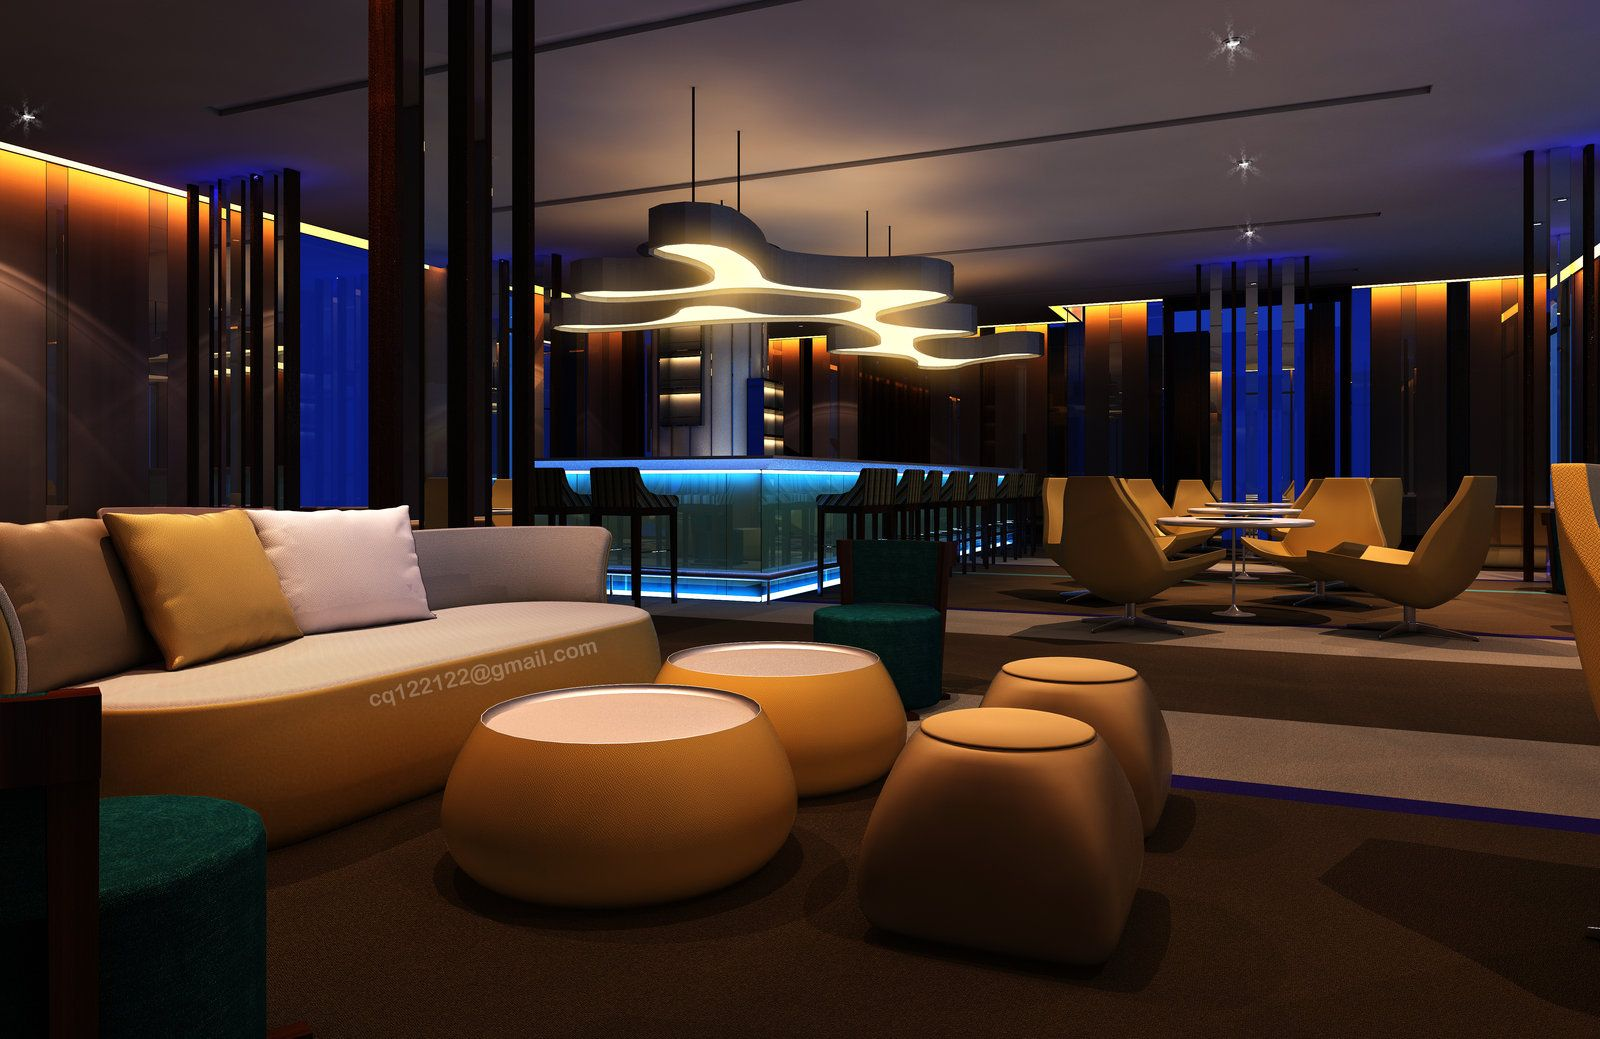 Hotel Lounge Bar Design (Night) By DouglasDao